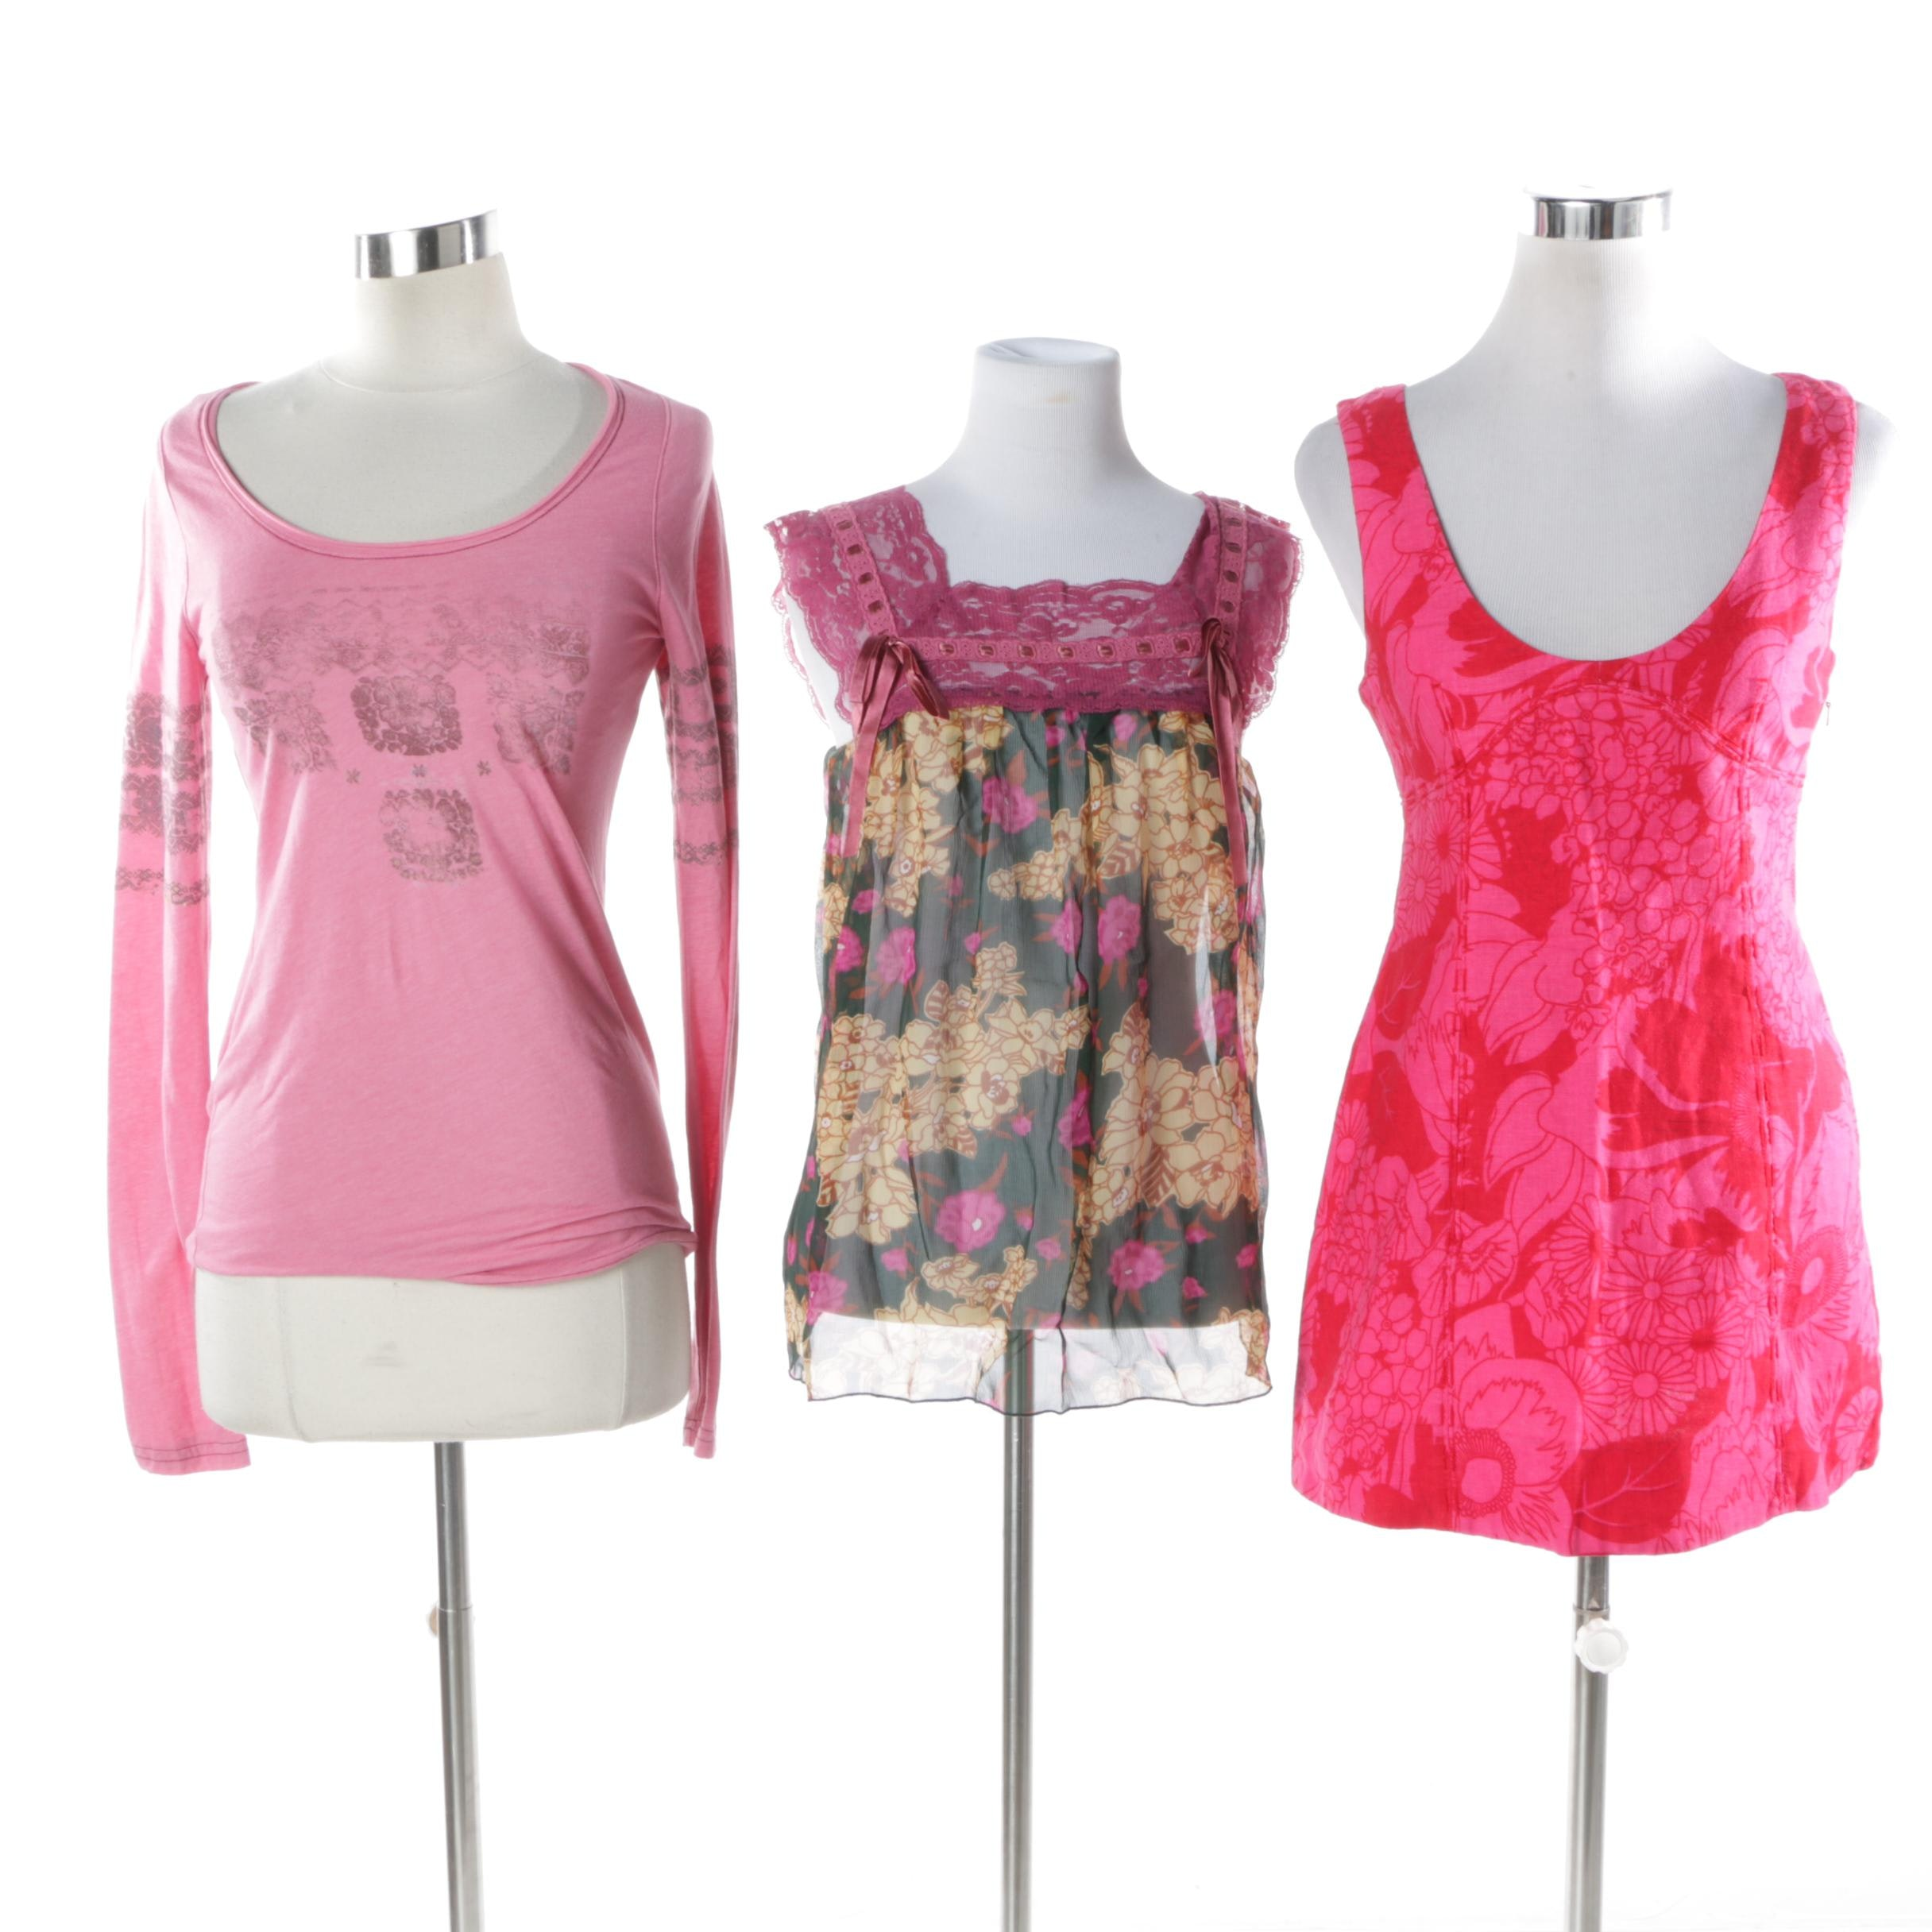 Women's Free People Pink Tops and Mini Dress